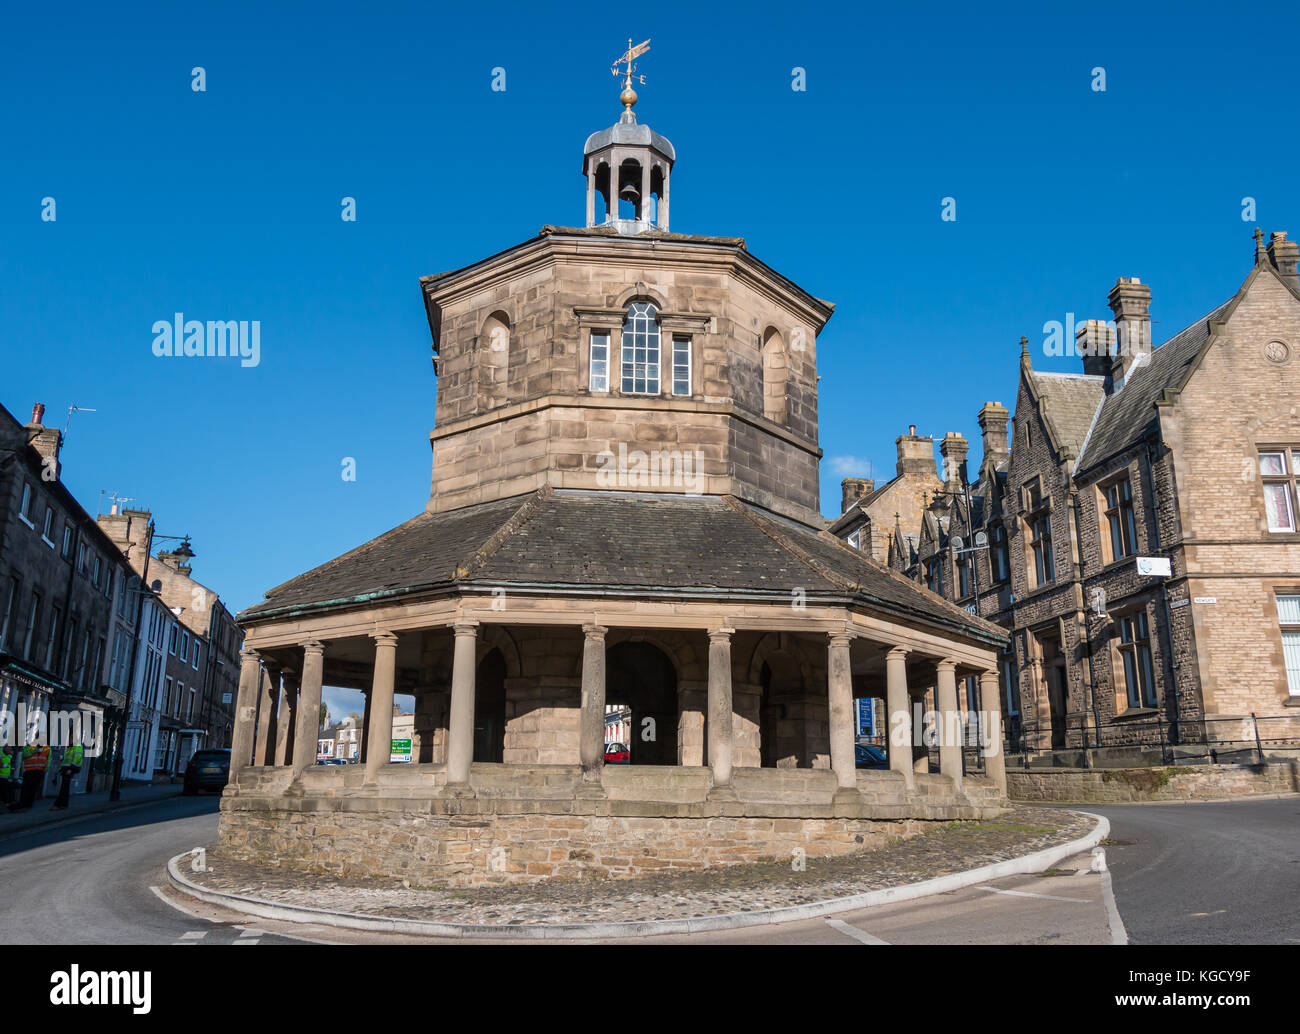 The Grade 1 listed 18th century octagonal market cross or Buttermarket in Barnard Castle, Teesdale, UK on a fine - Stock Image